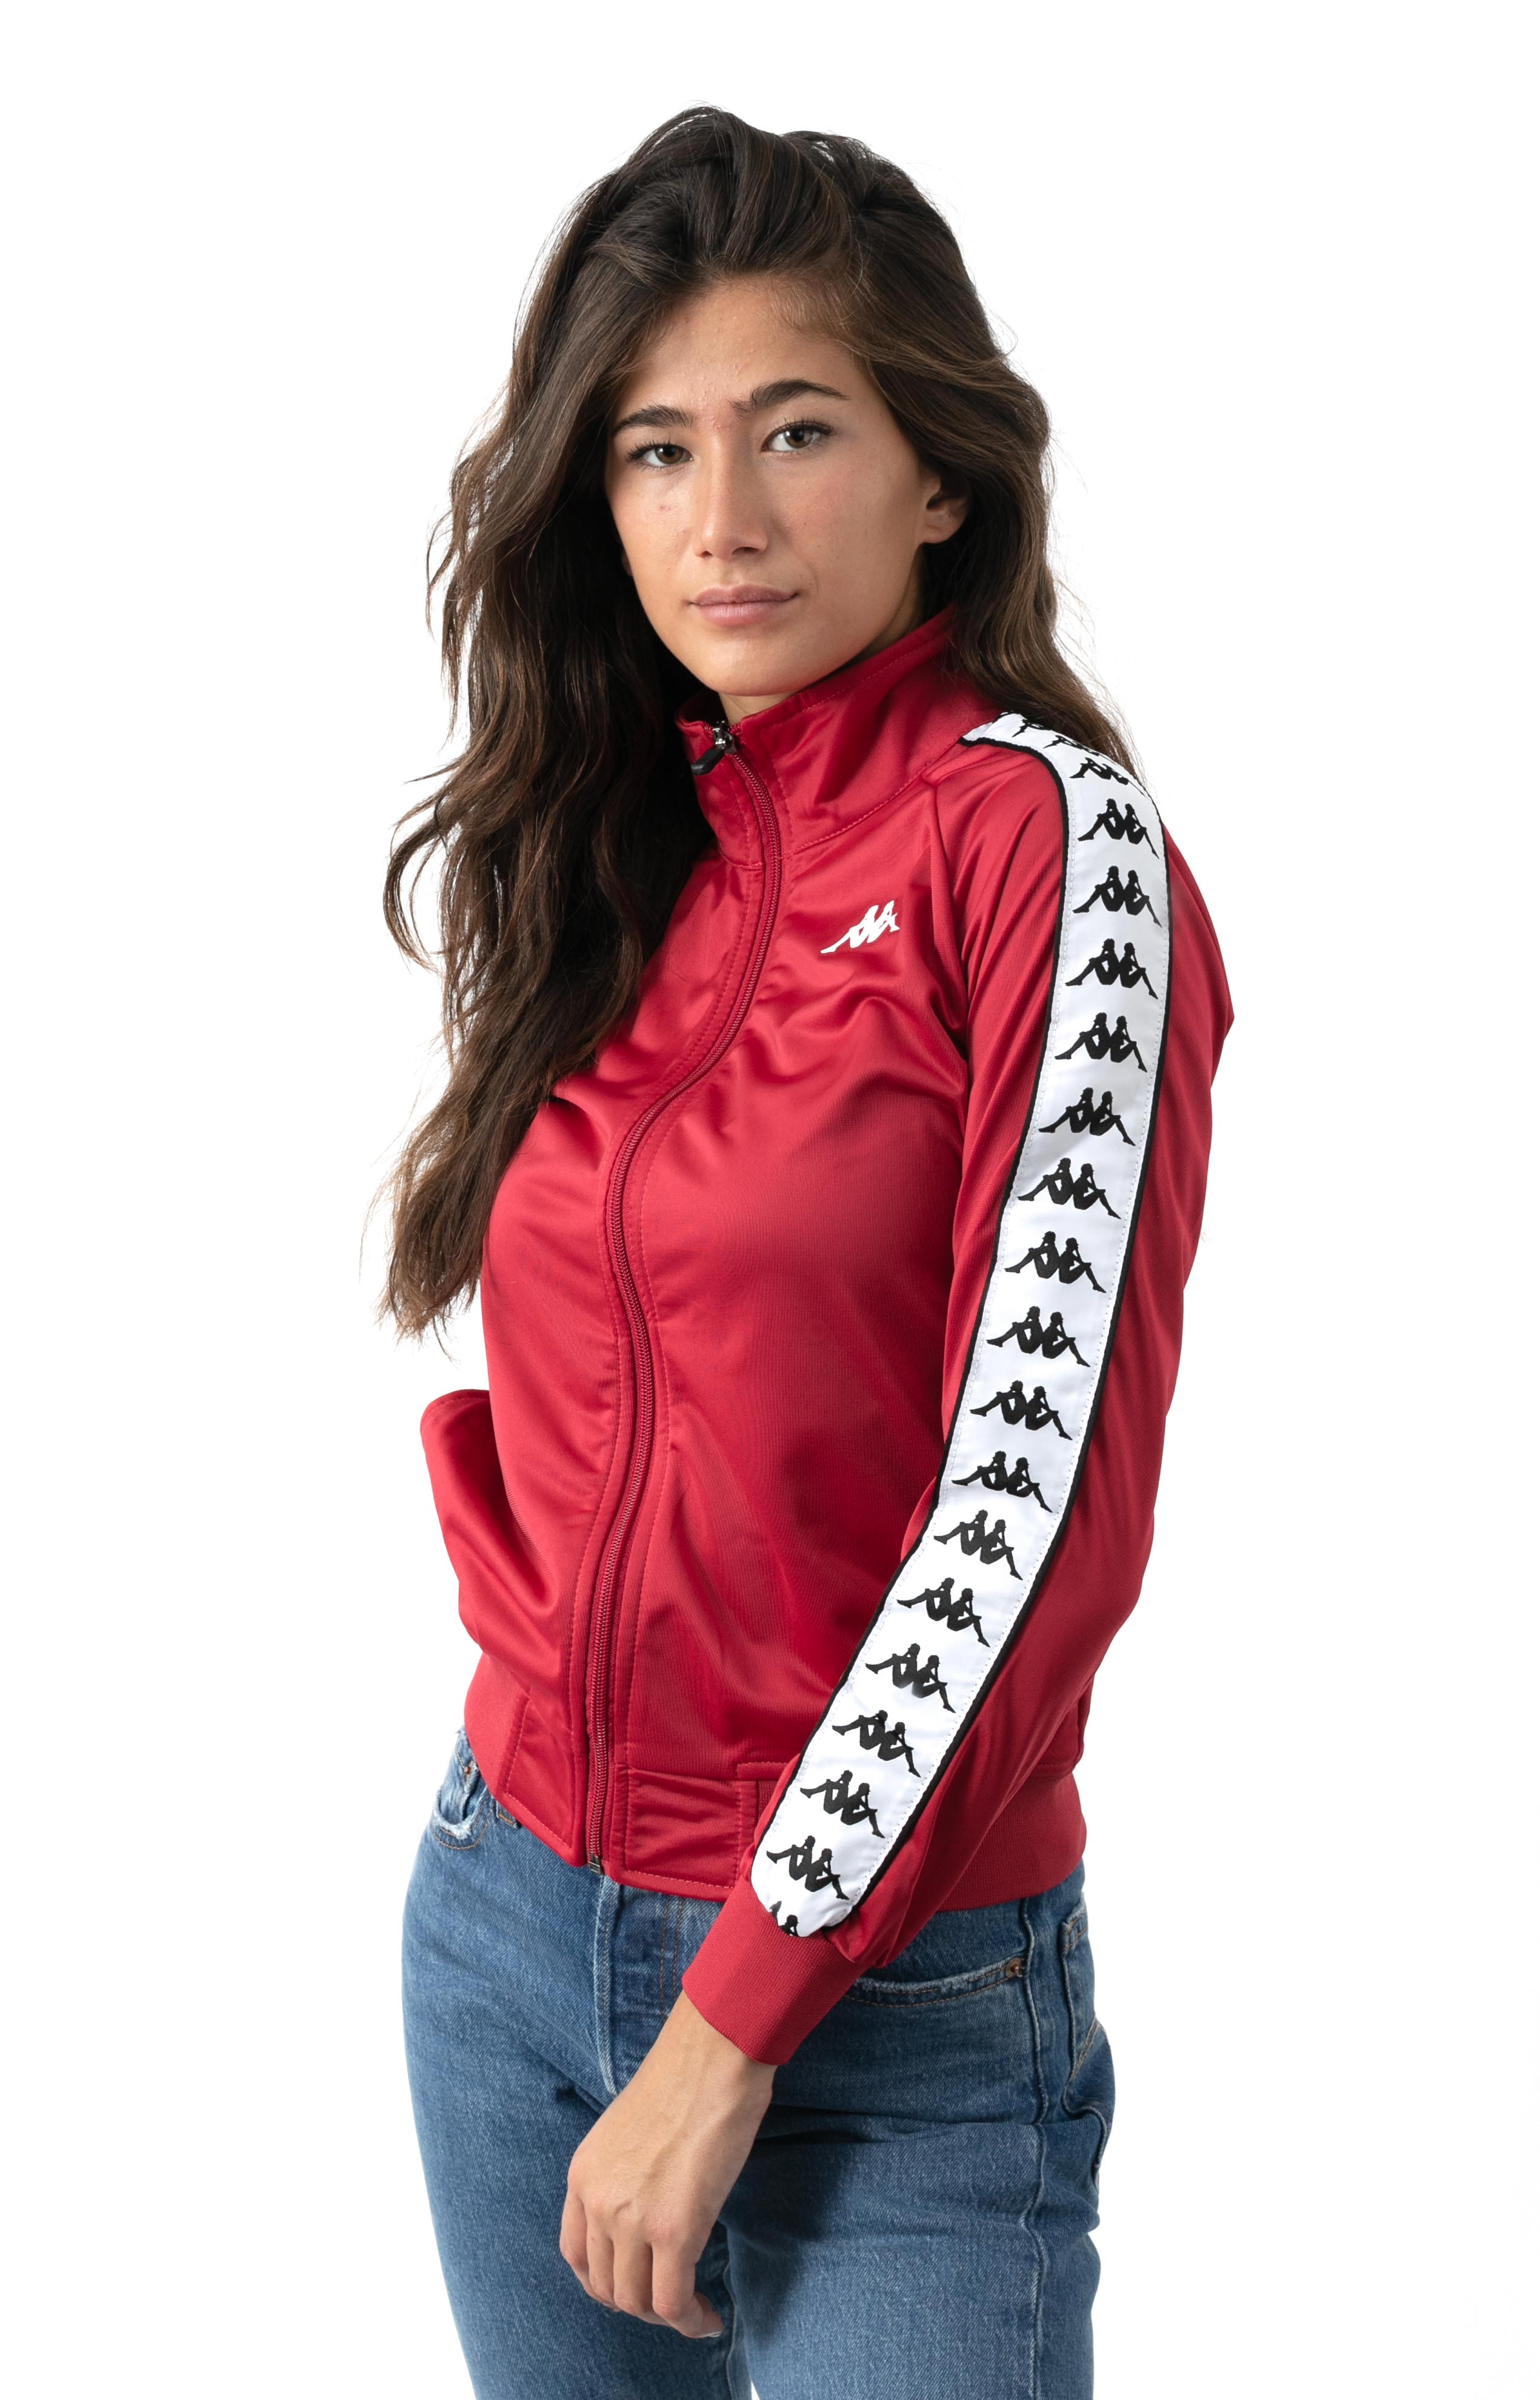 222 Banda Wanniston Slim Track Jacket - Red Cyclamen/White